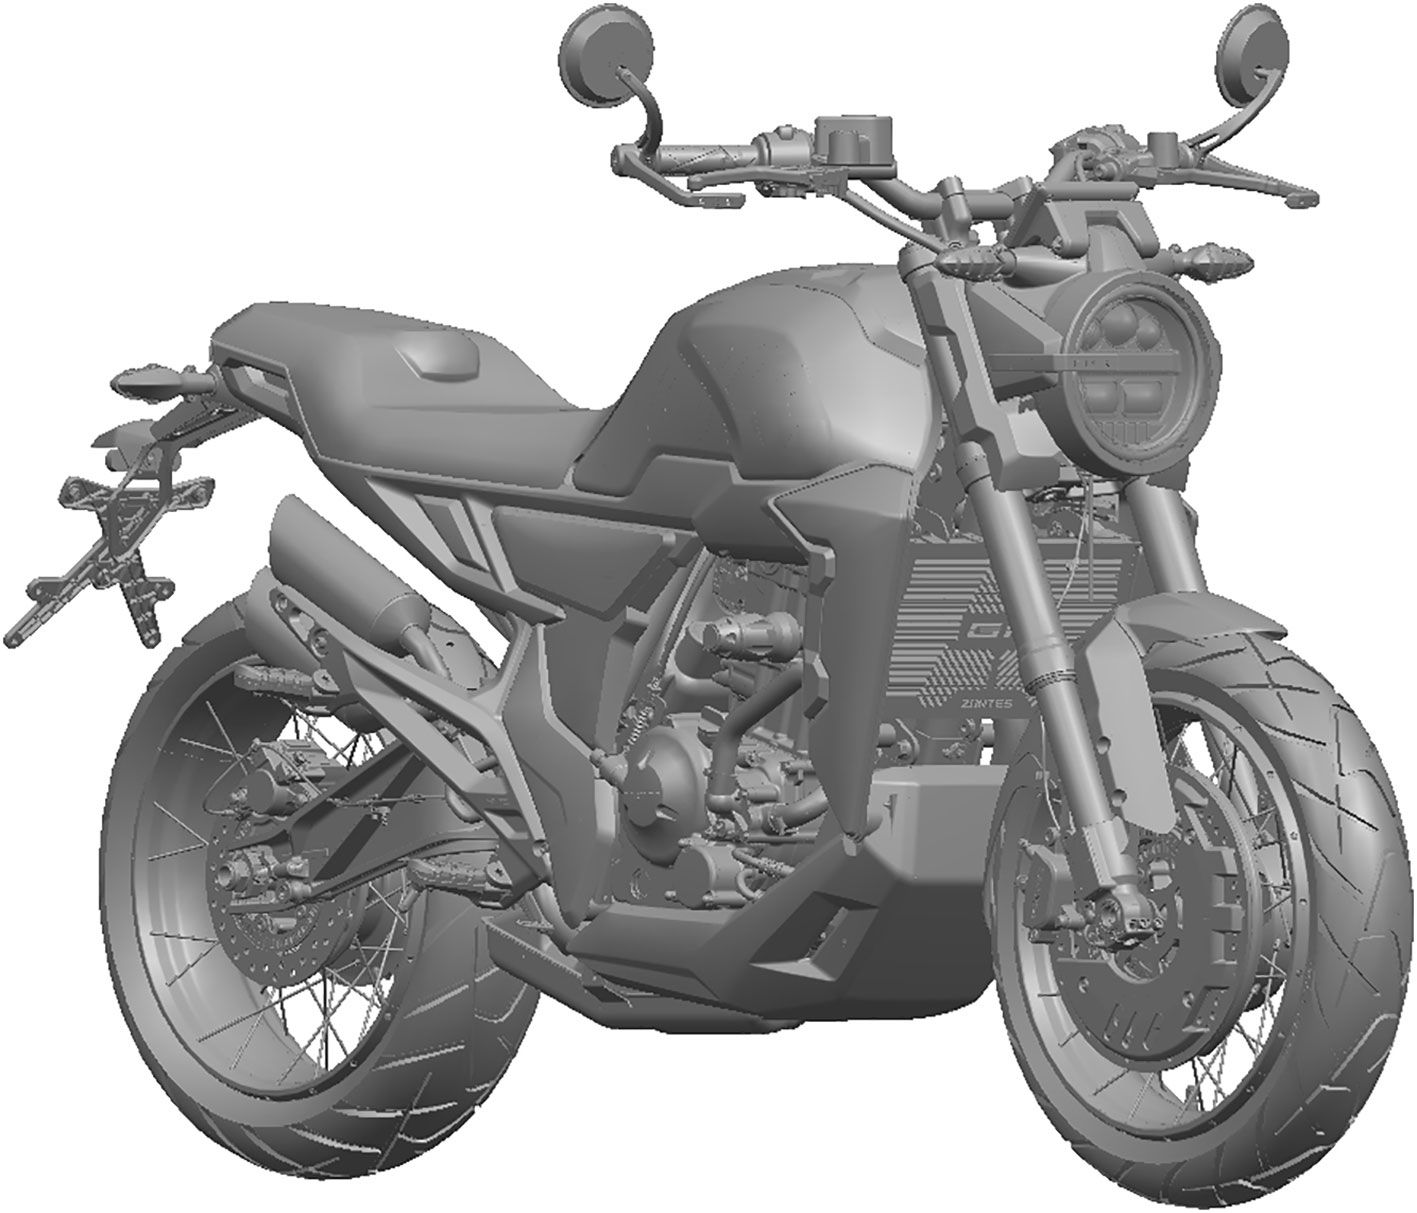 The new 350cc single keeps several elements from earlier Zontes 310 models, but integrates newer shapes, like the circular headlight, as well.